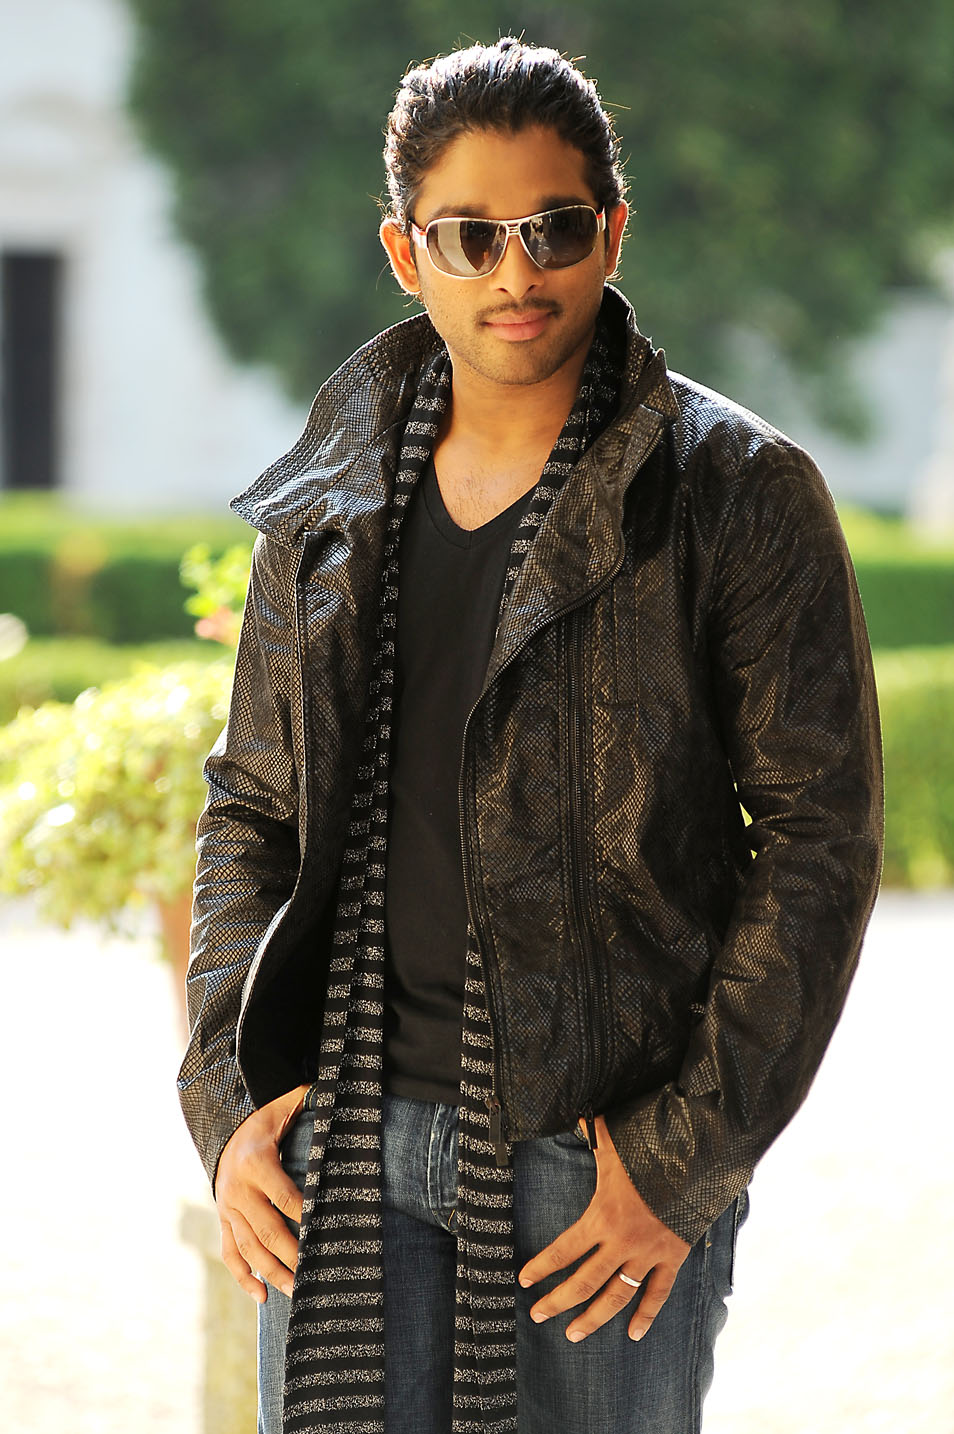 Allu Arjun Stylish Stills In Badrinath Tollywood Stars